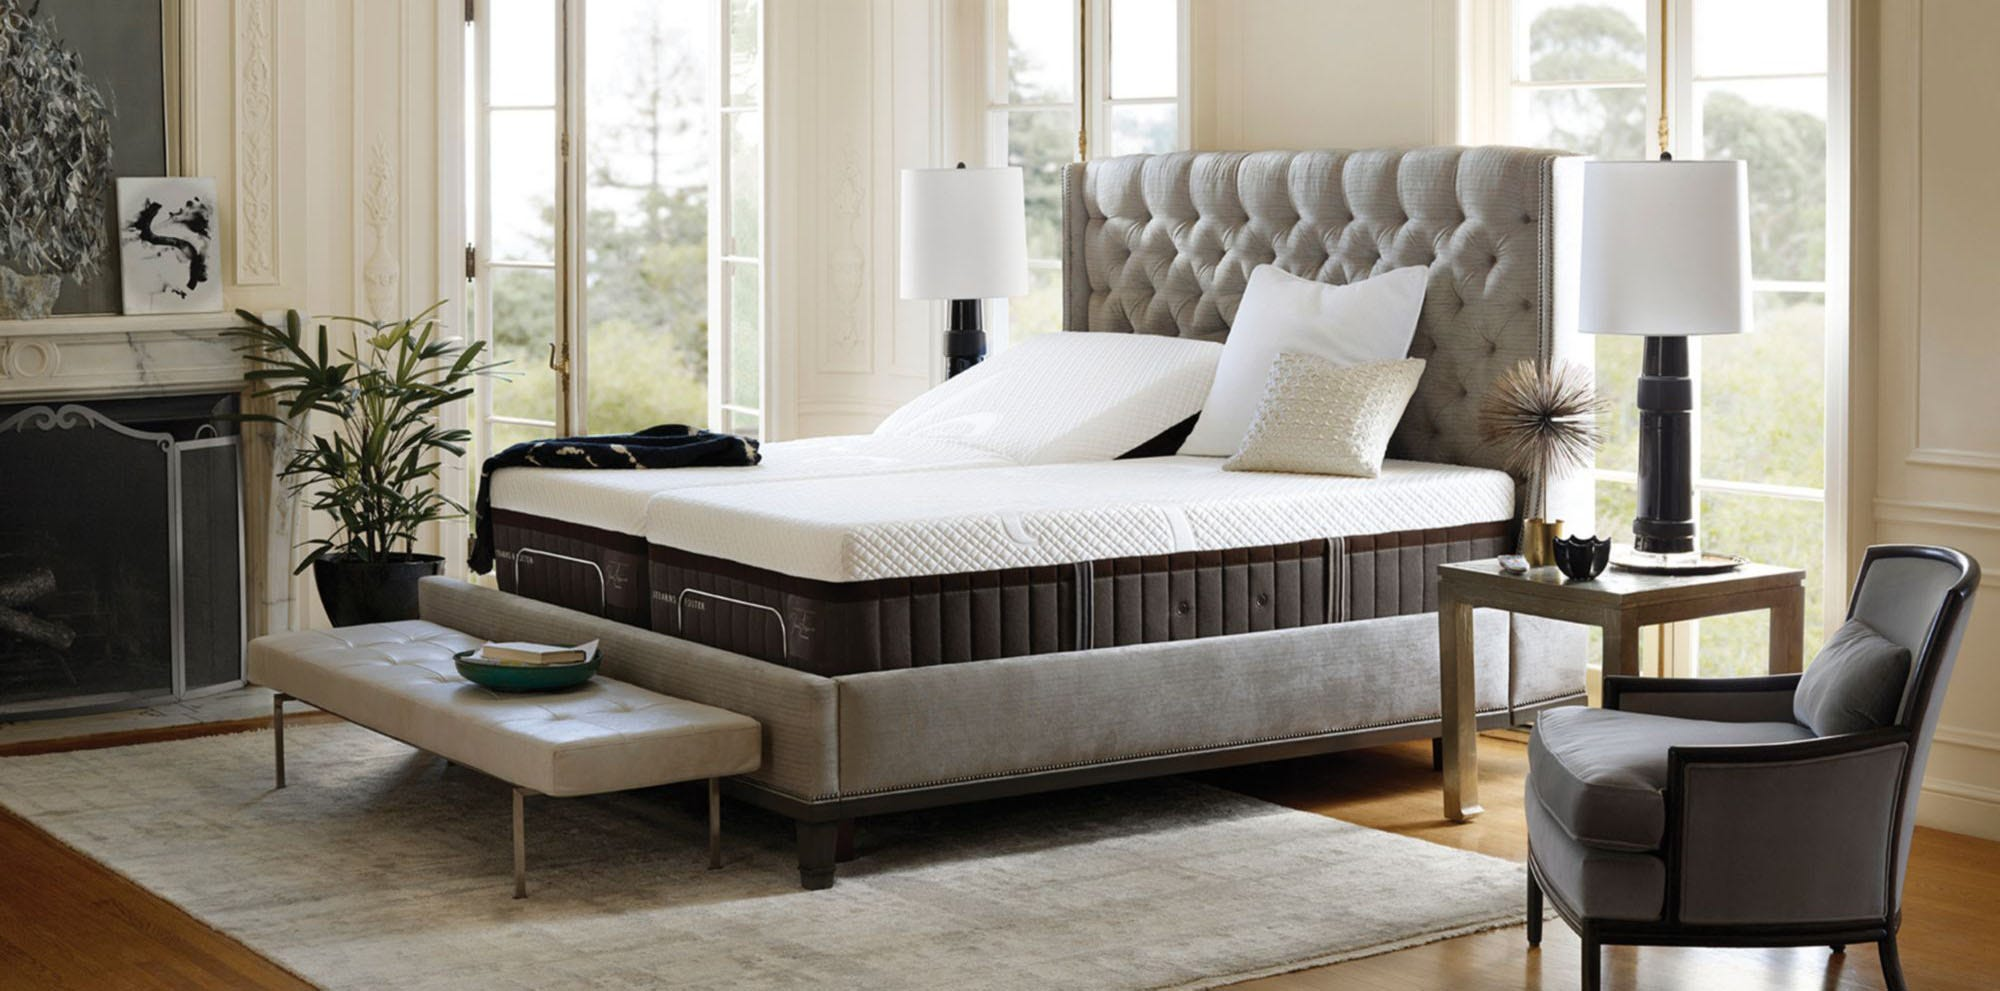 Stearns And Foster Reviews >> Stearns Foster Mattress Reviews